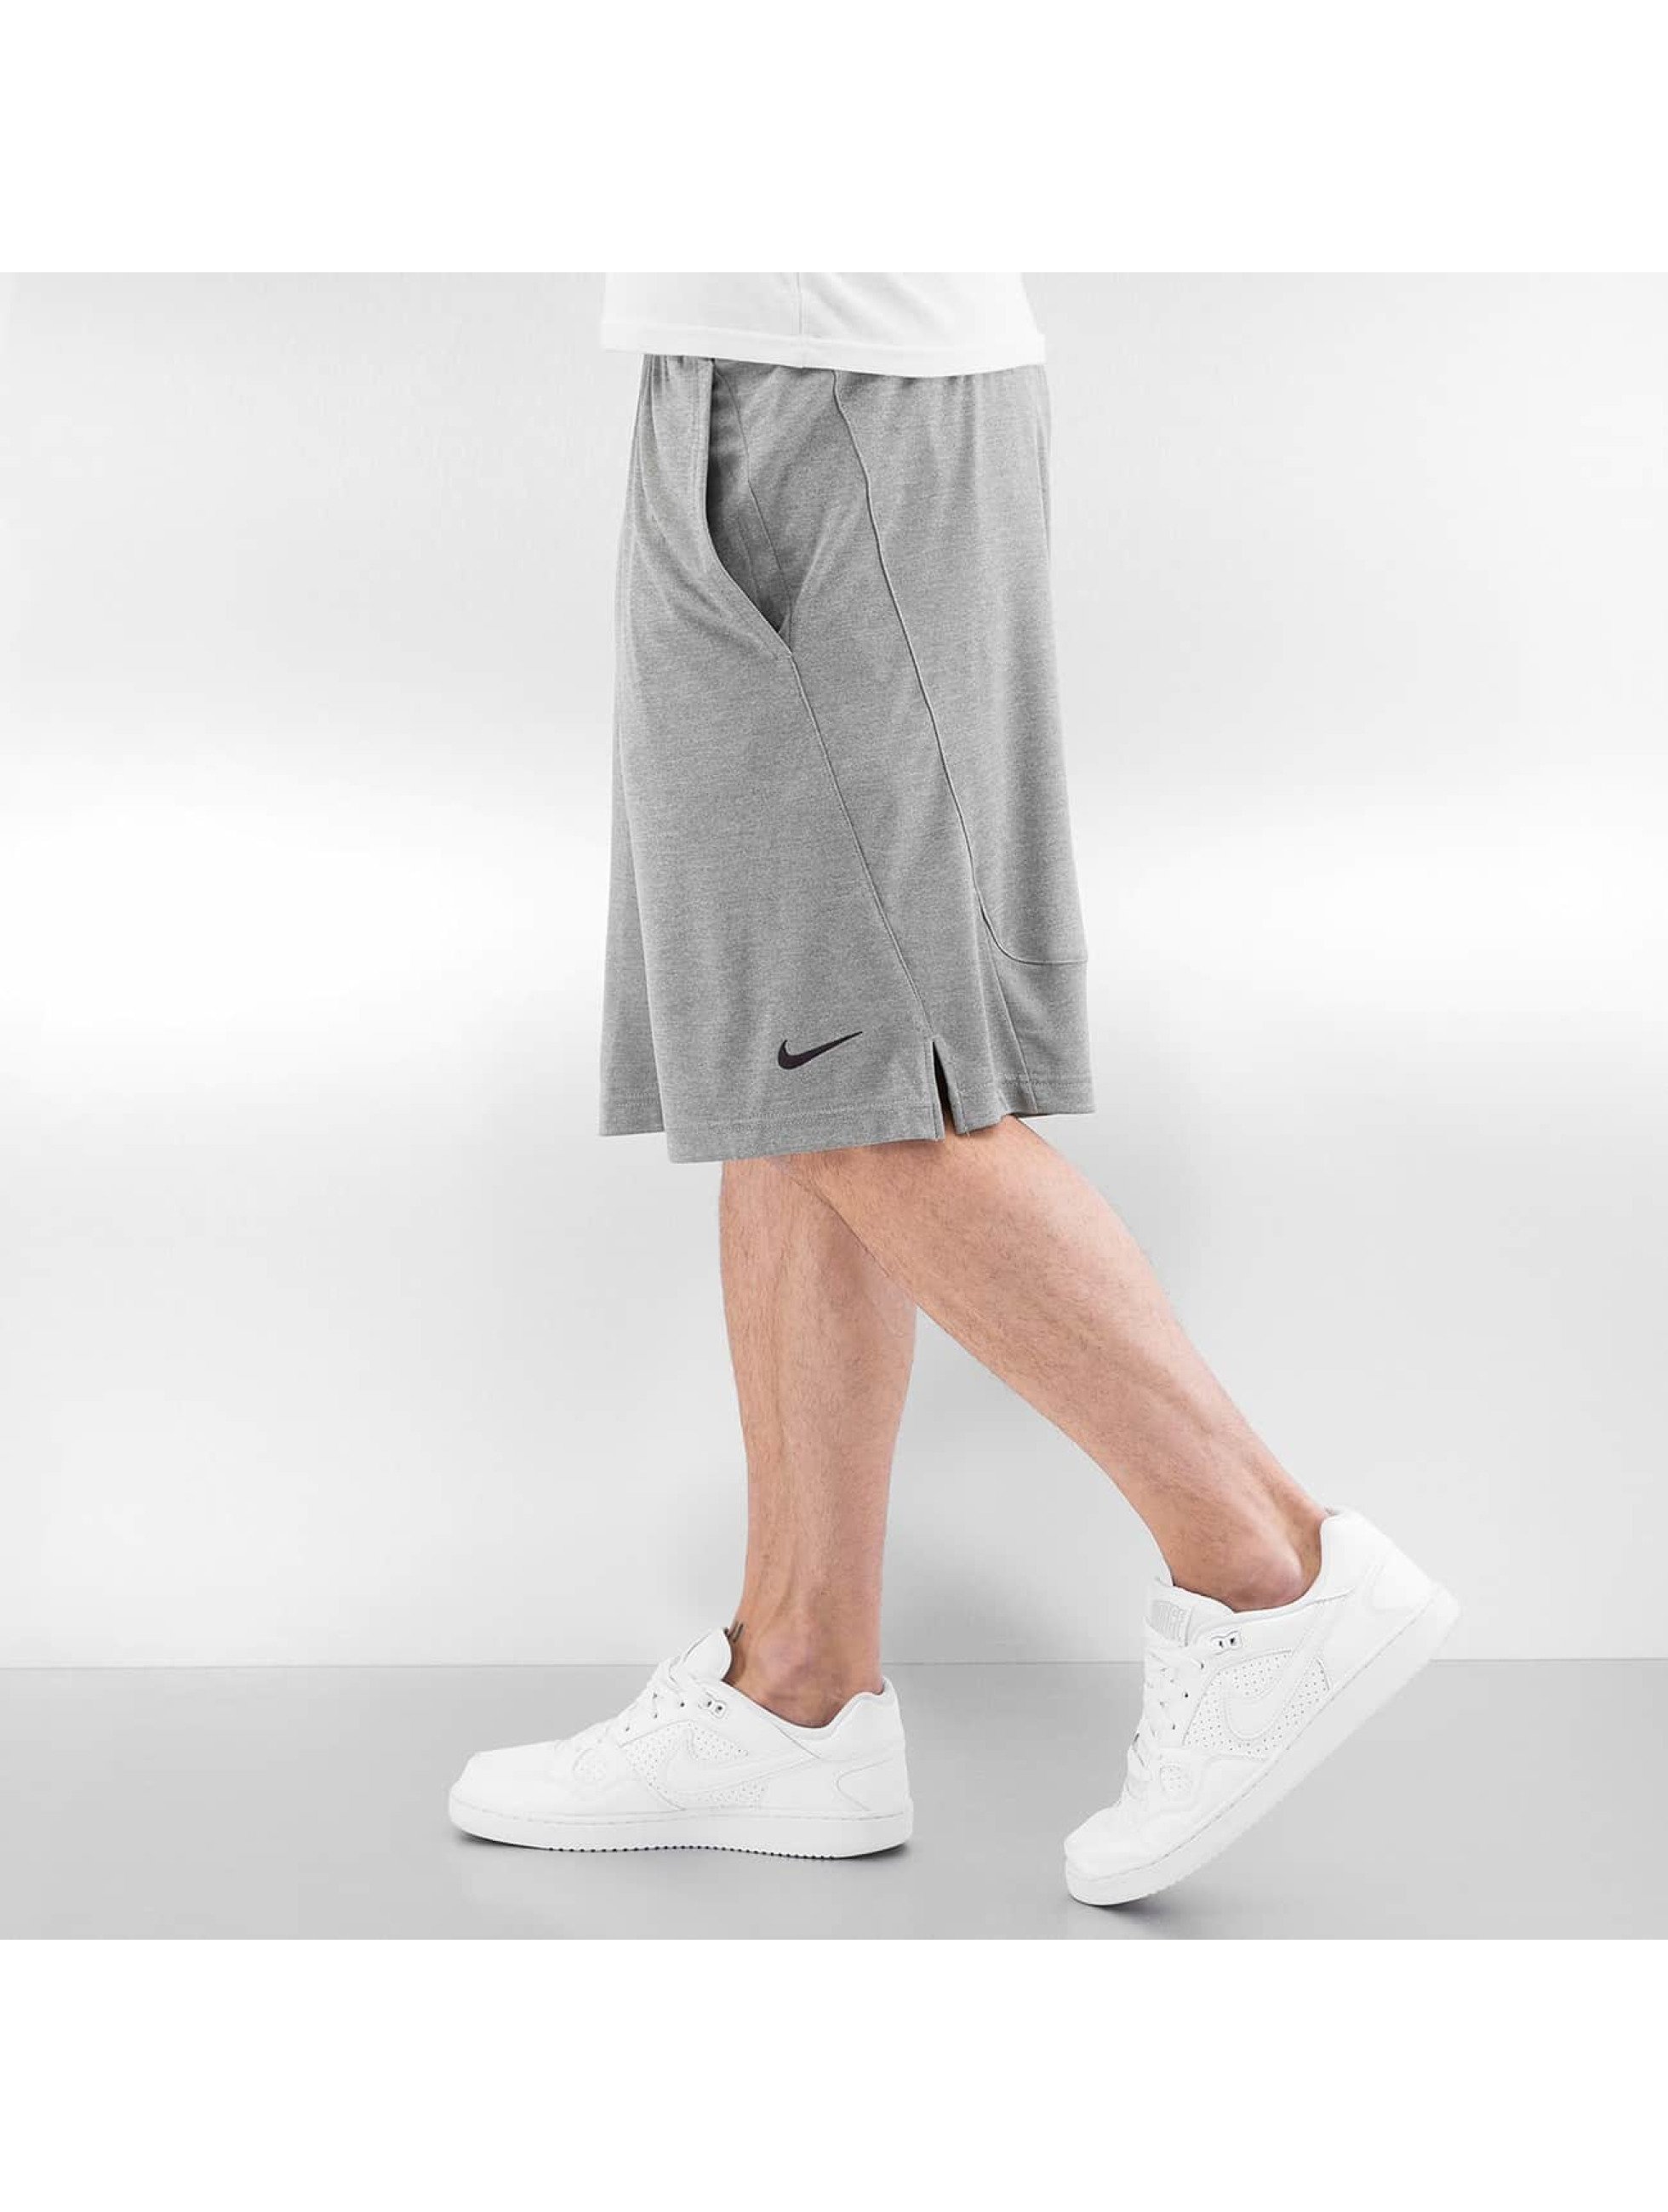 "Nike Shorts Fly 9"" grau"